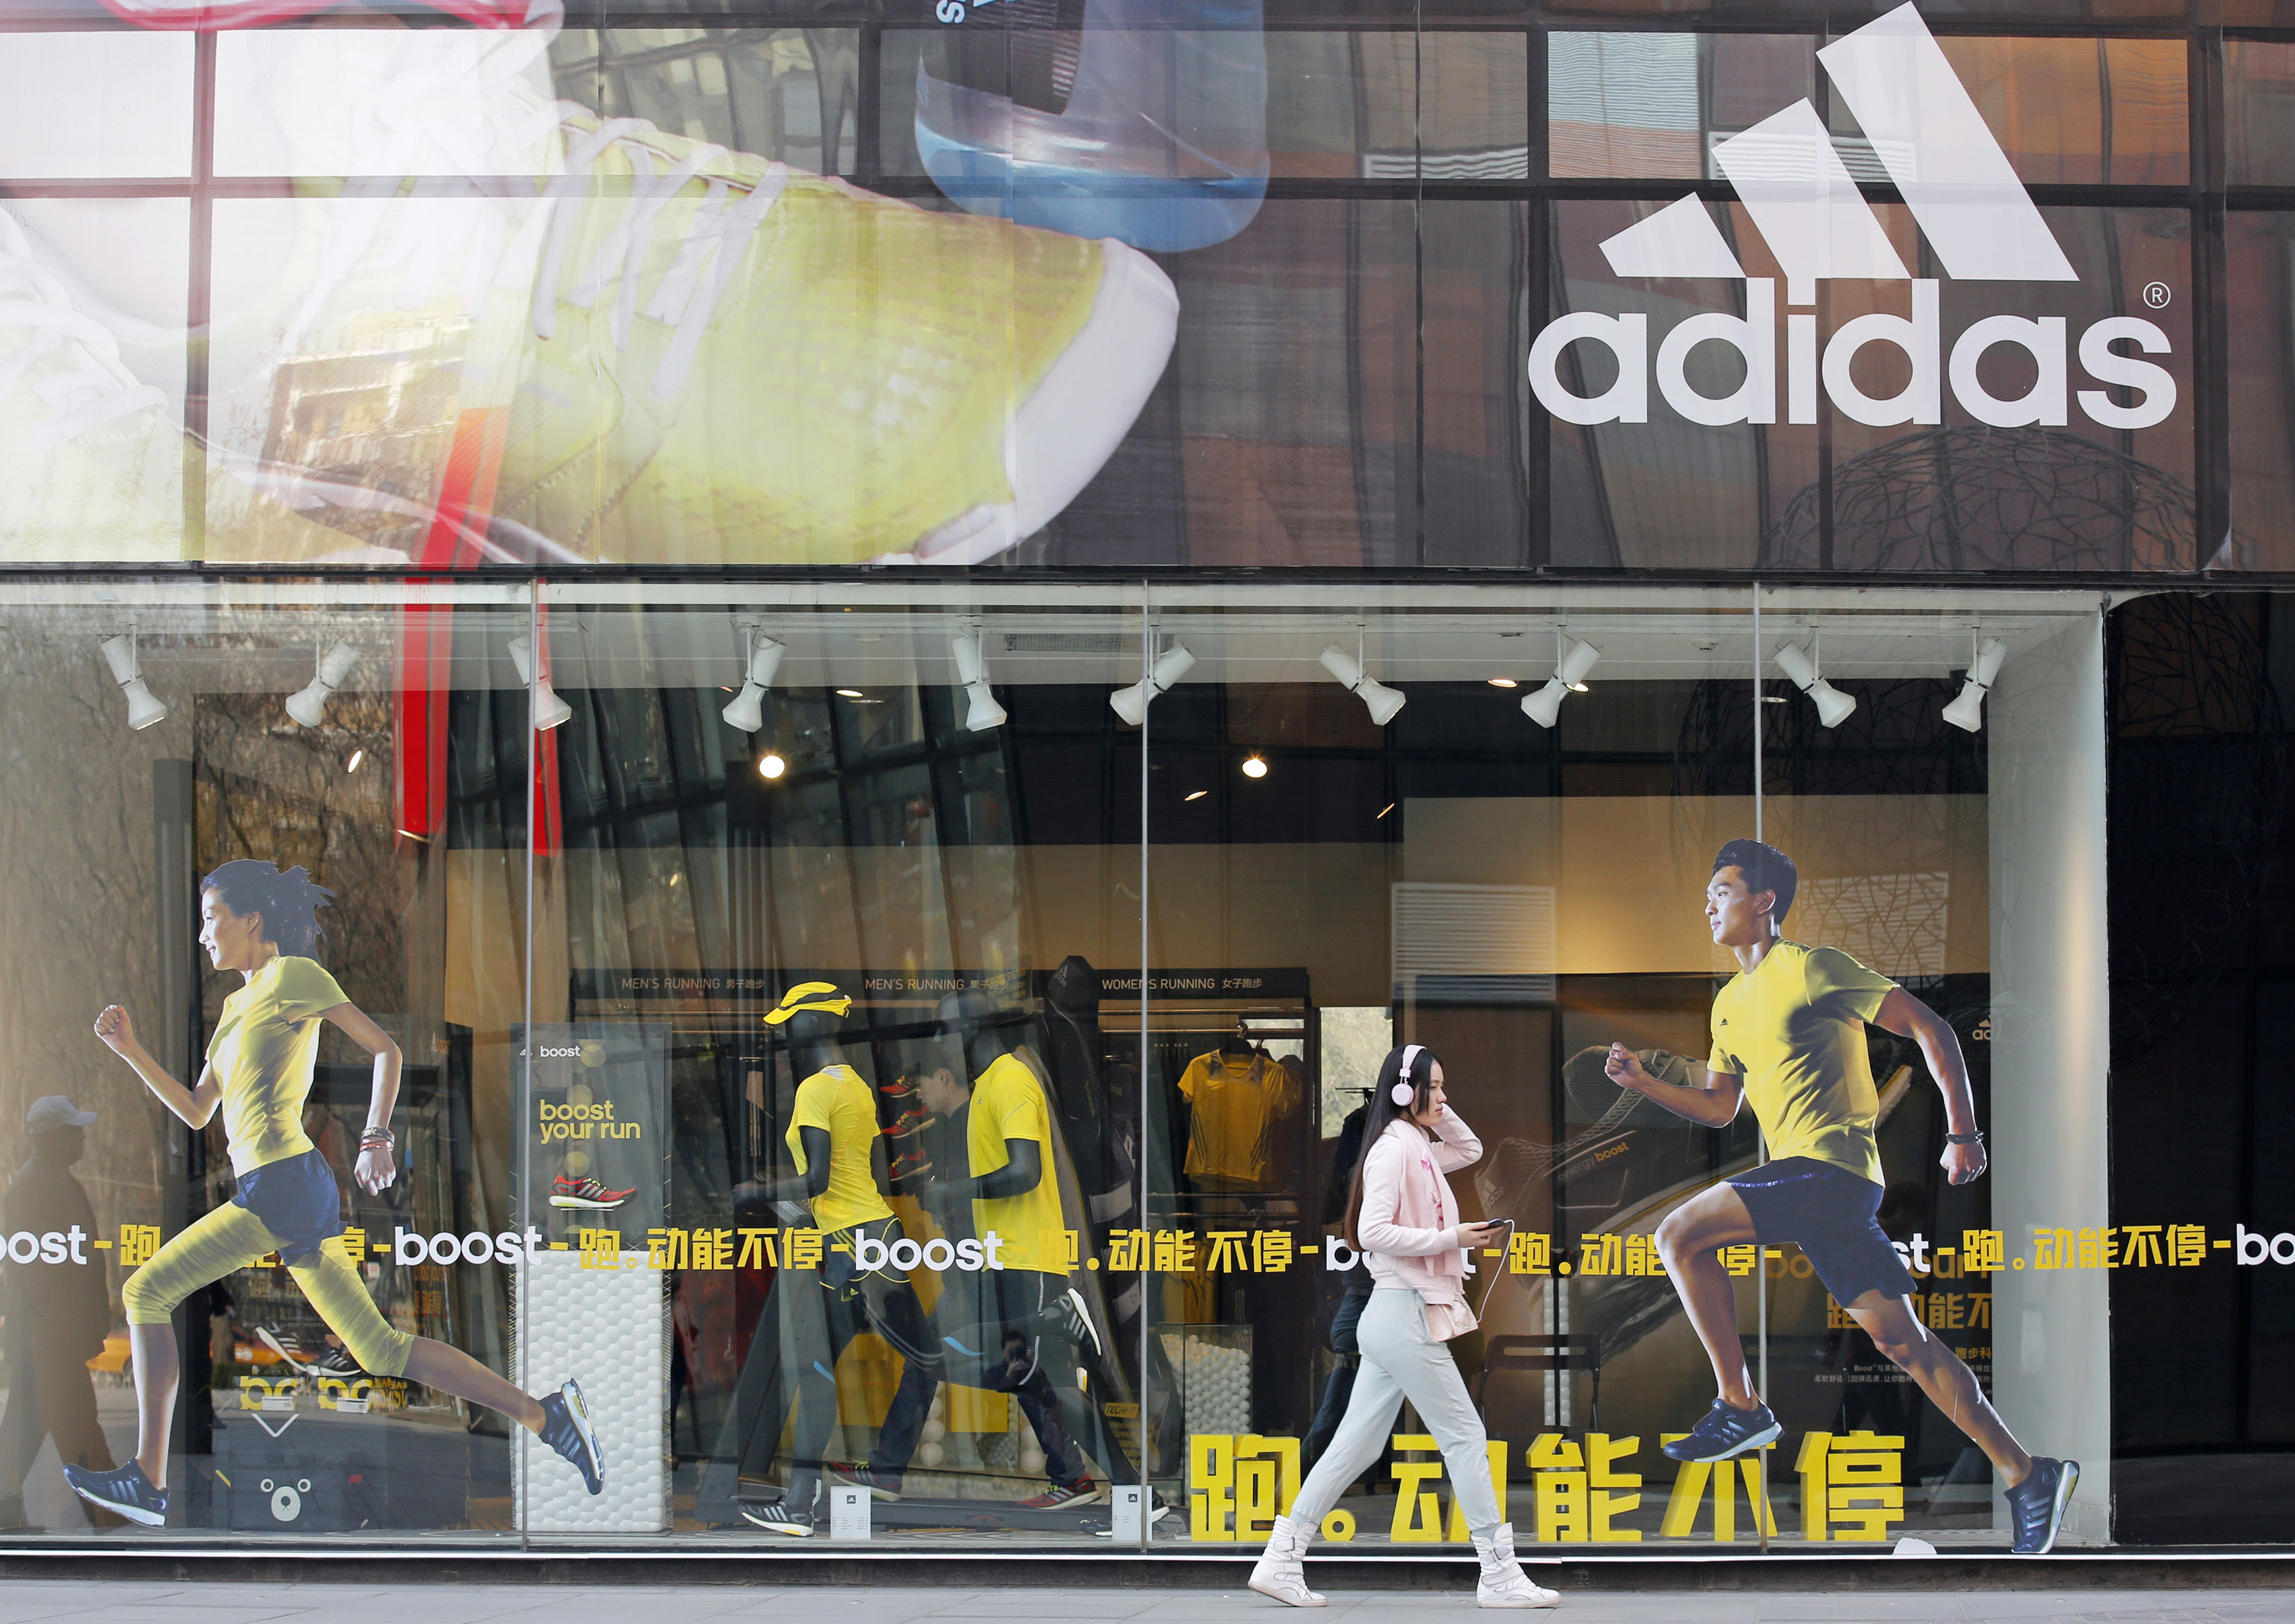 adidas business plans Adidas strategic management  in the times of growing e-business, adidas has also begun to sell its  so implementation of strategic plans requires.